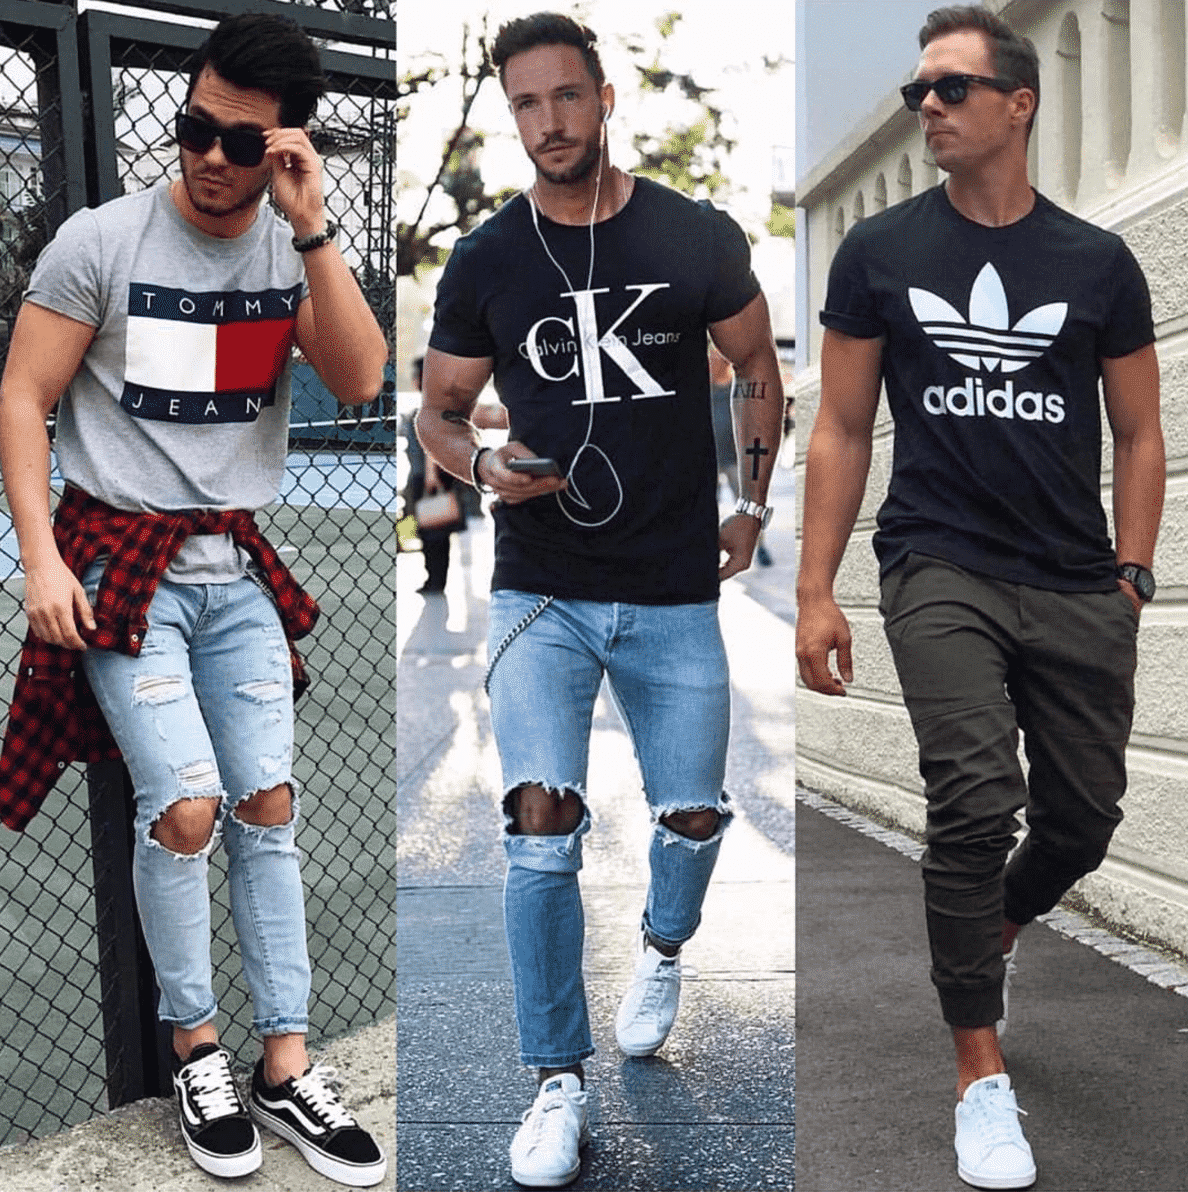 e654bd2d 17 Most Popular Street Style Fashion Ideas for Men 2018